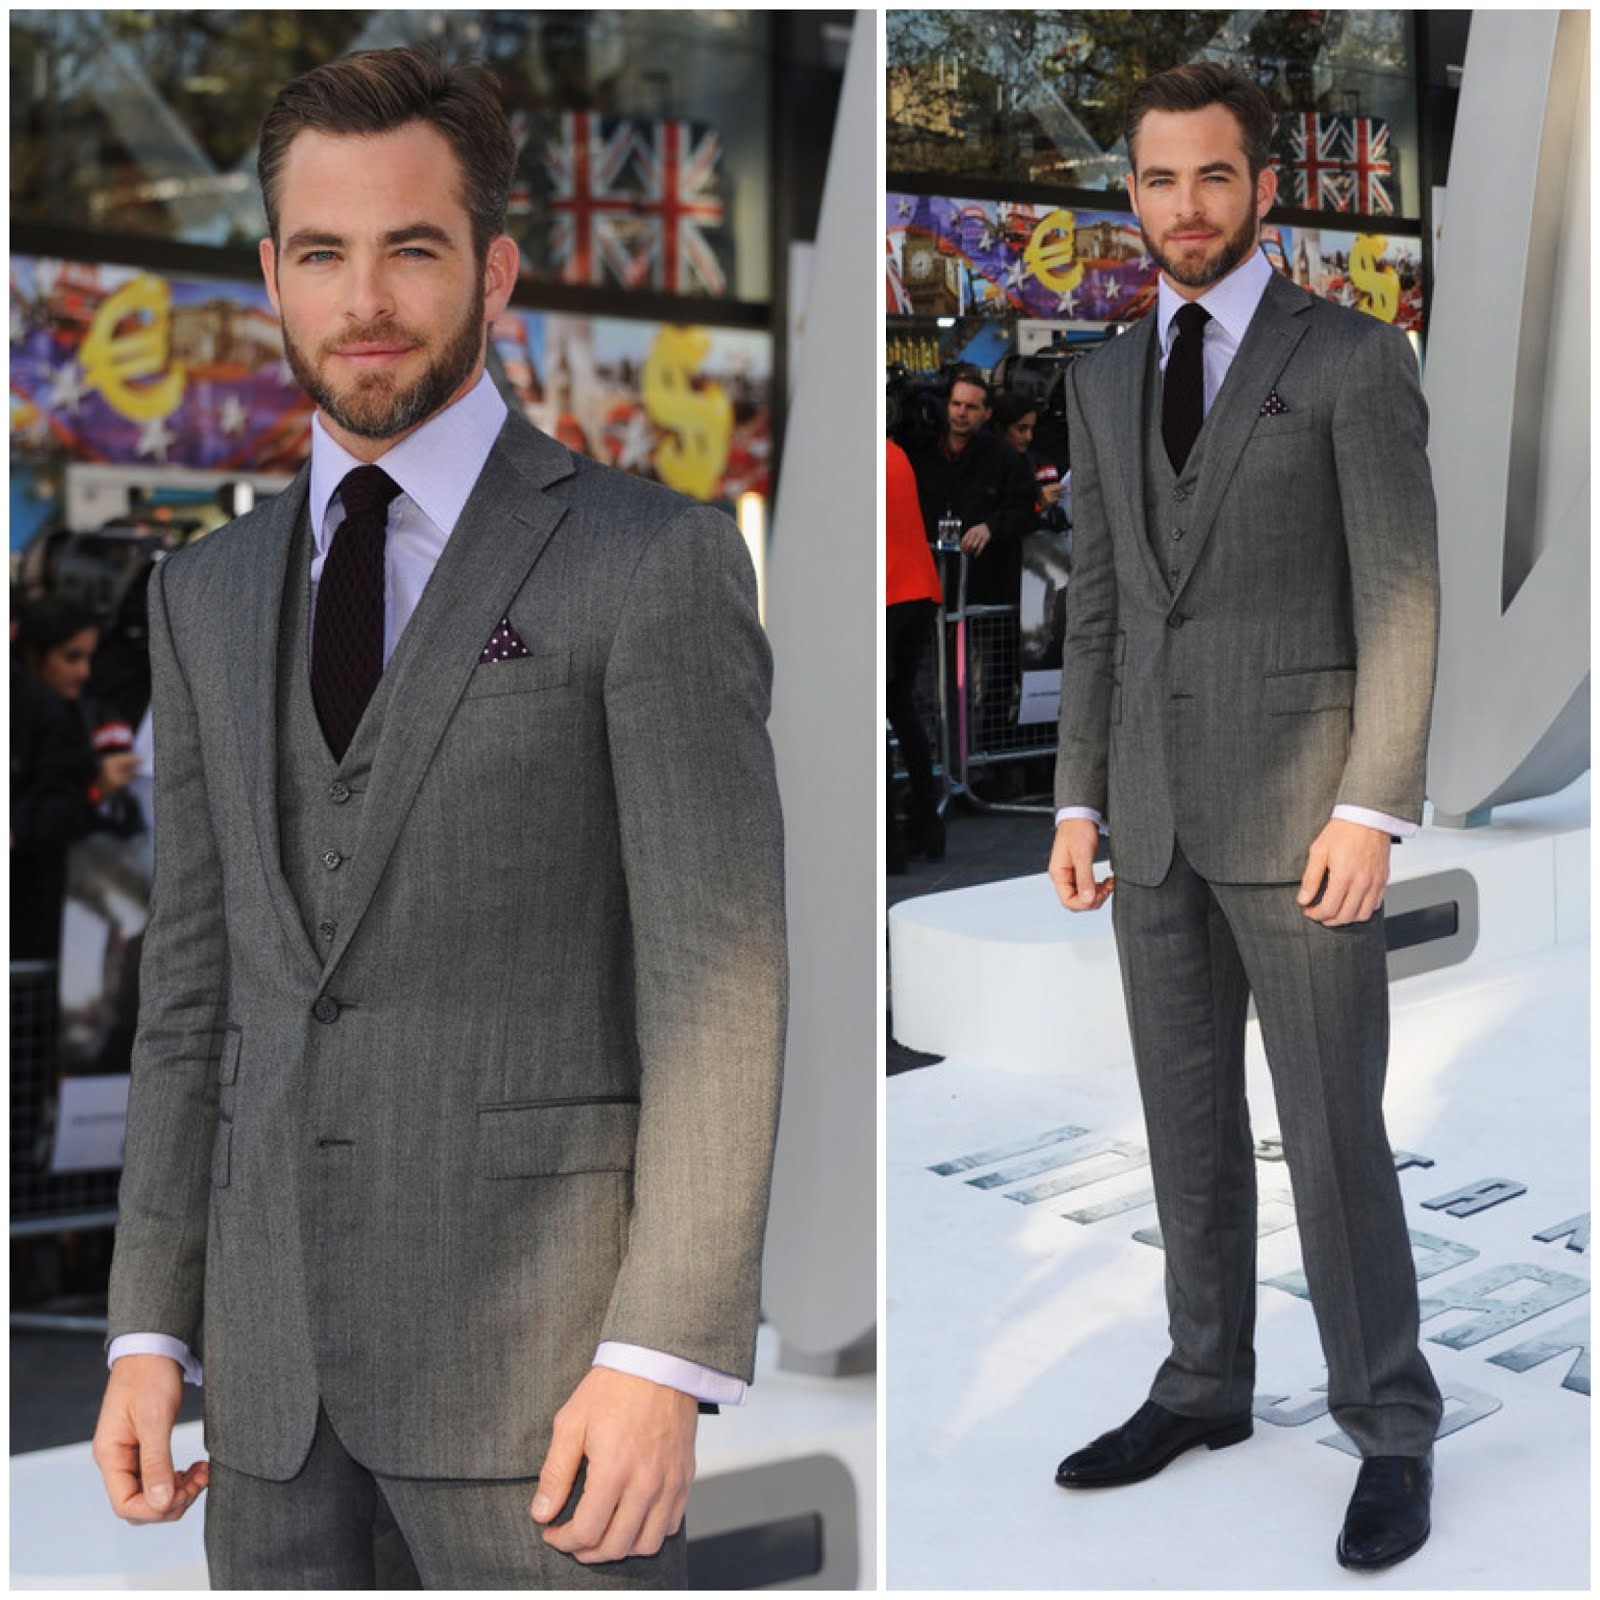 00O00 Menswear Blog: Chris Pine in Ralph Lauren Purple Label made to measure 3 piece suit - 'Star Trek Into Darkness' London premiere May 2013